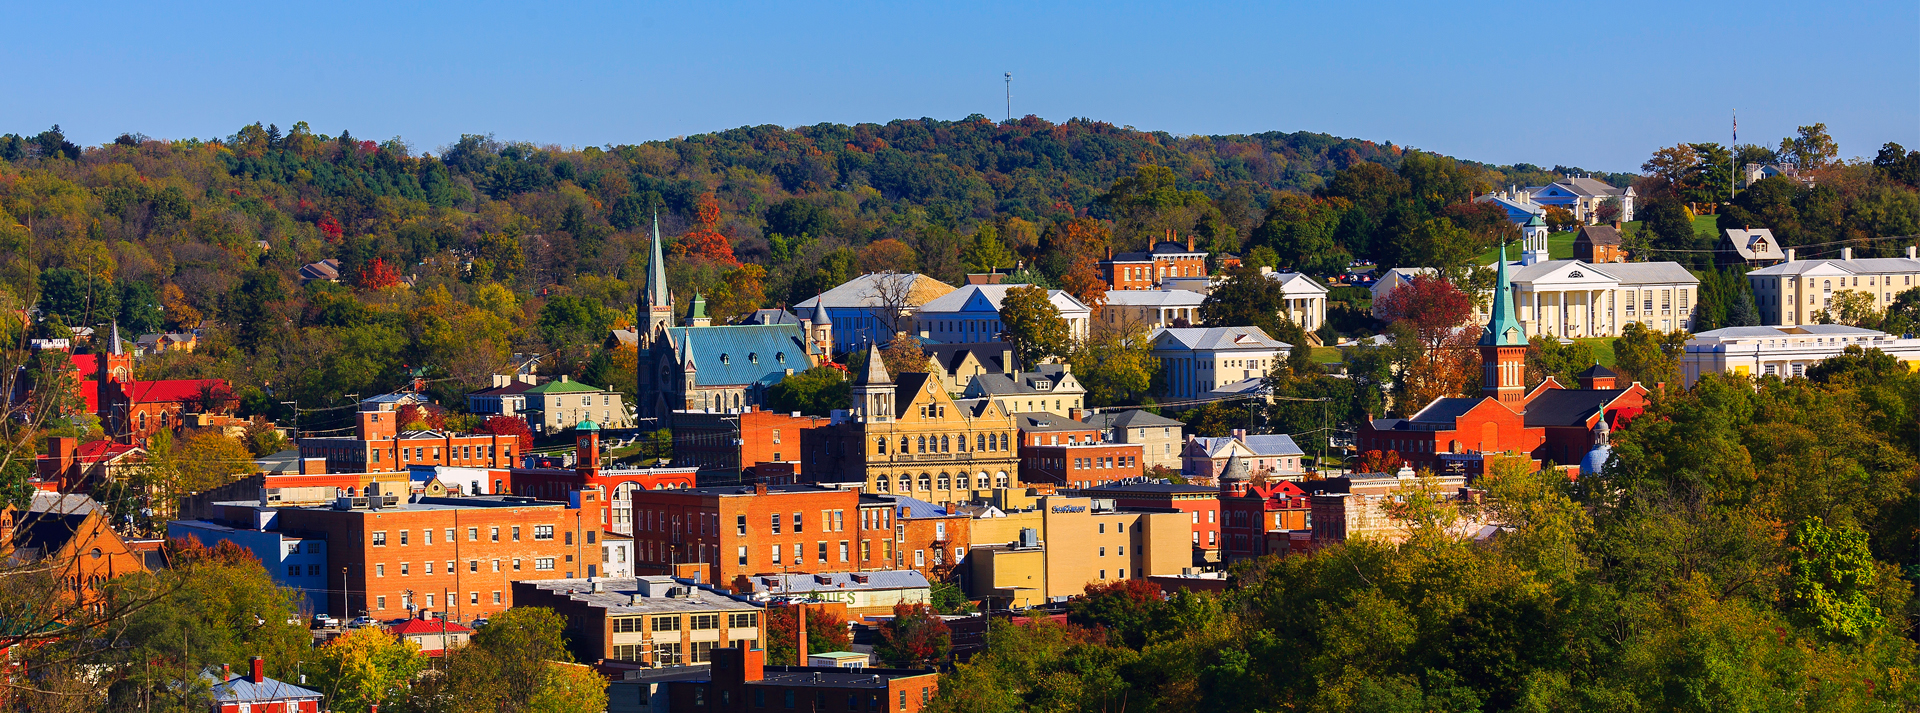 fall cityscape in staunton va